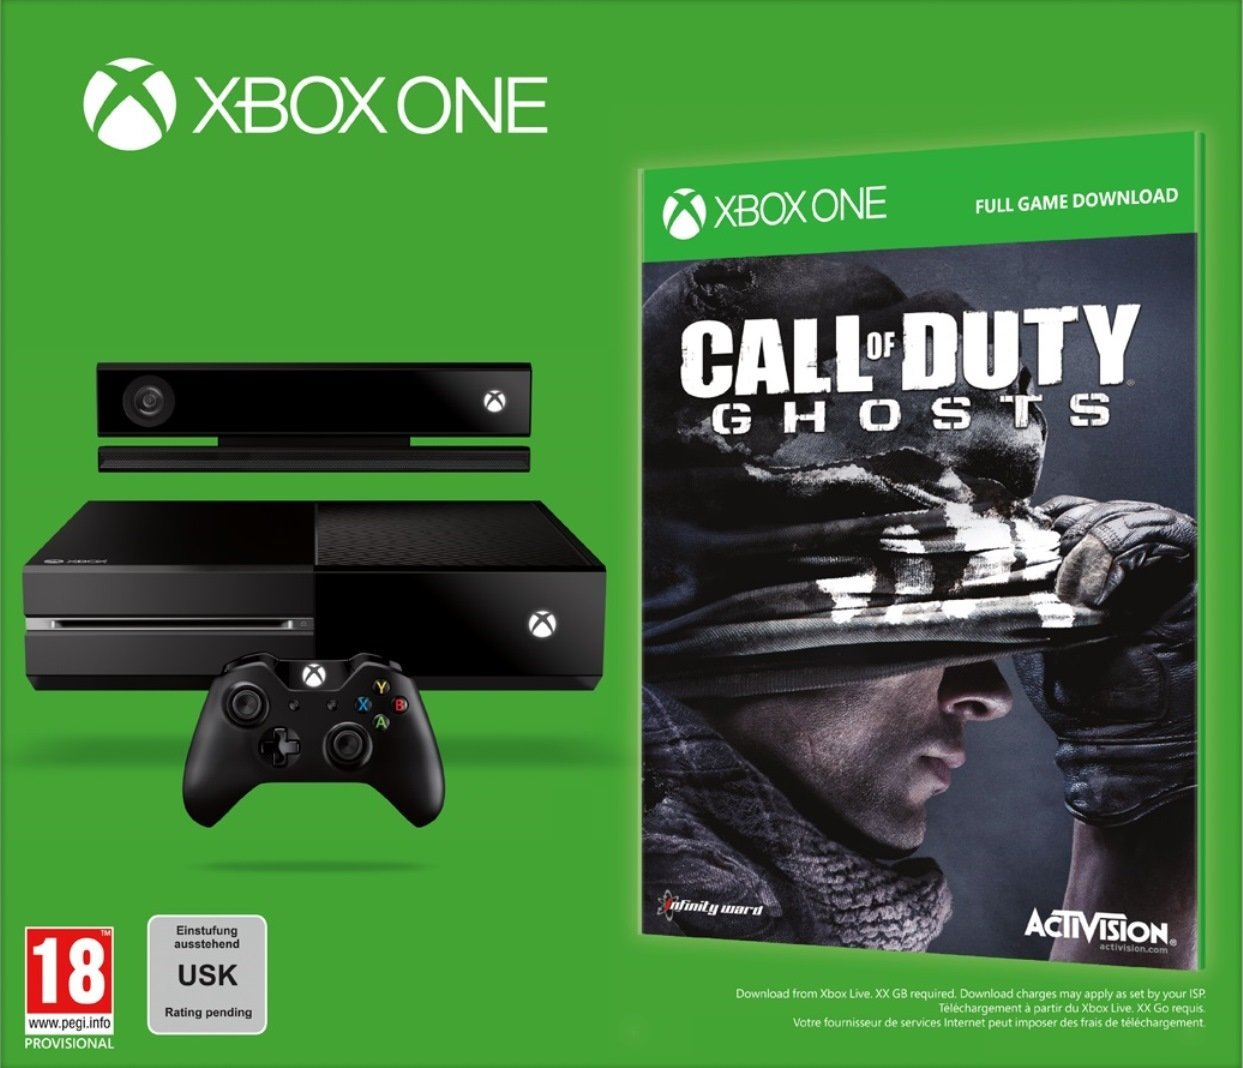 PRÉCOMMANDER XBOX ONE + CALL OF DUTY GHOSTS